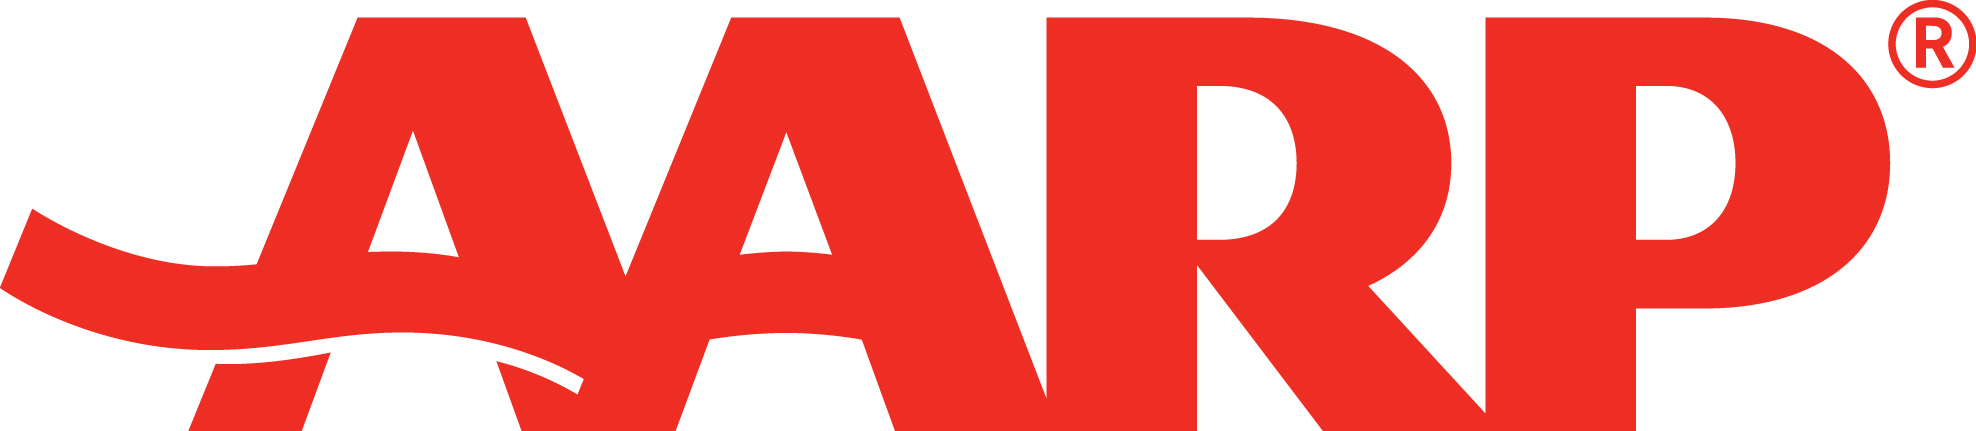 Bay Area Aarp Members Save On Long Term Care Insurance